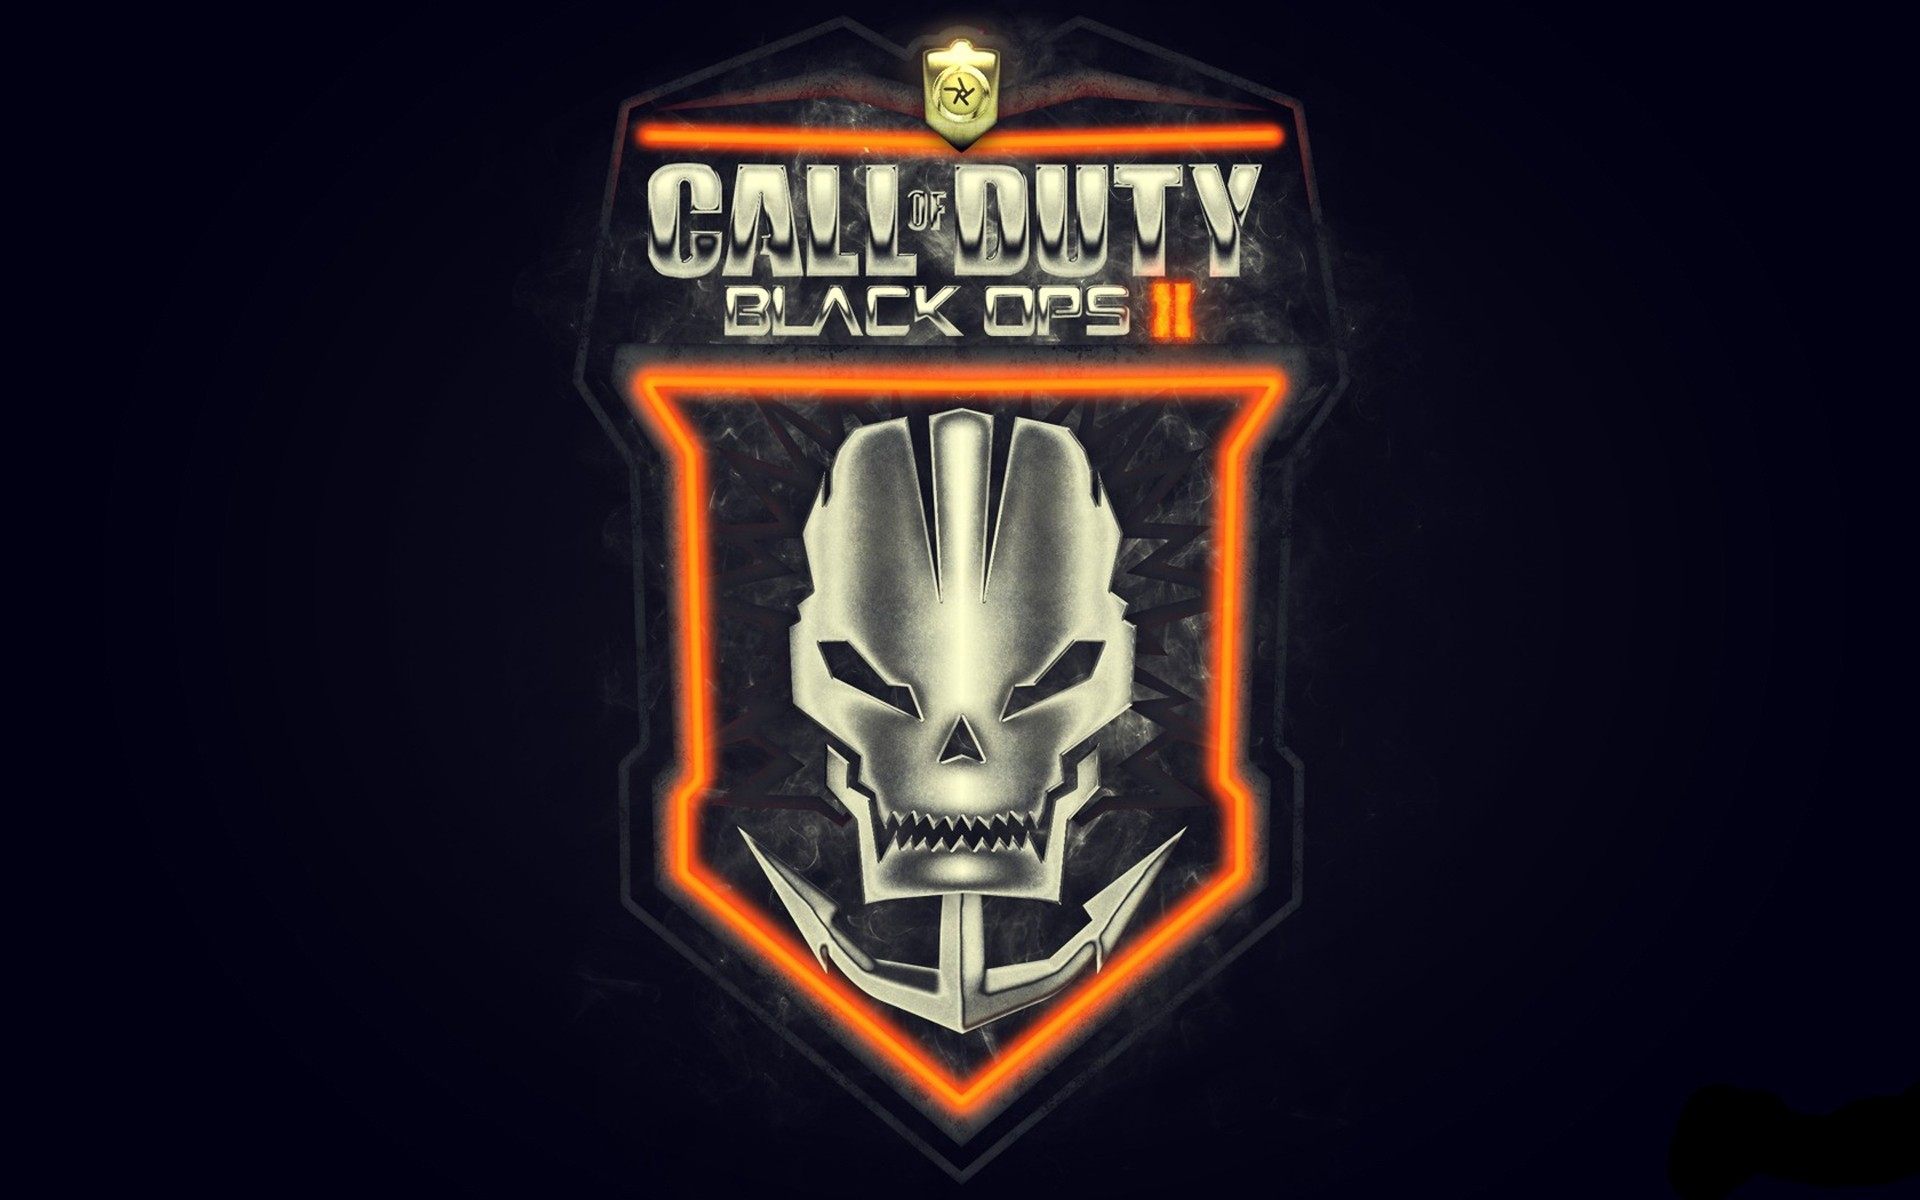 Video Games Call Of Duty Black Ops 2 Black Ops 2 Wallpaper